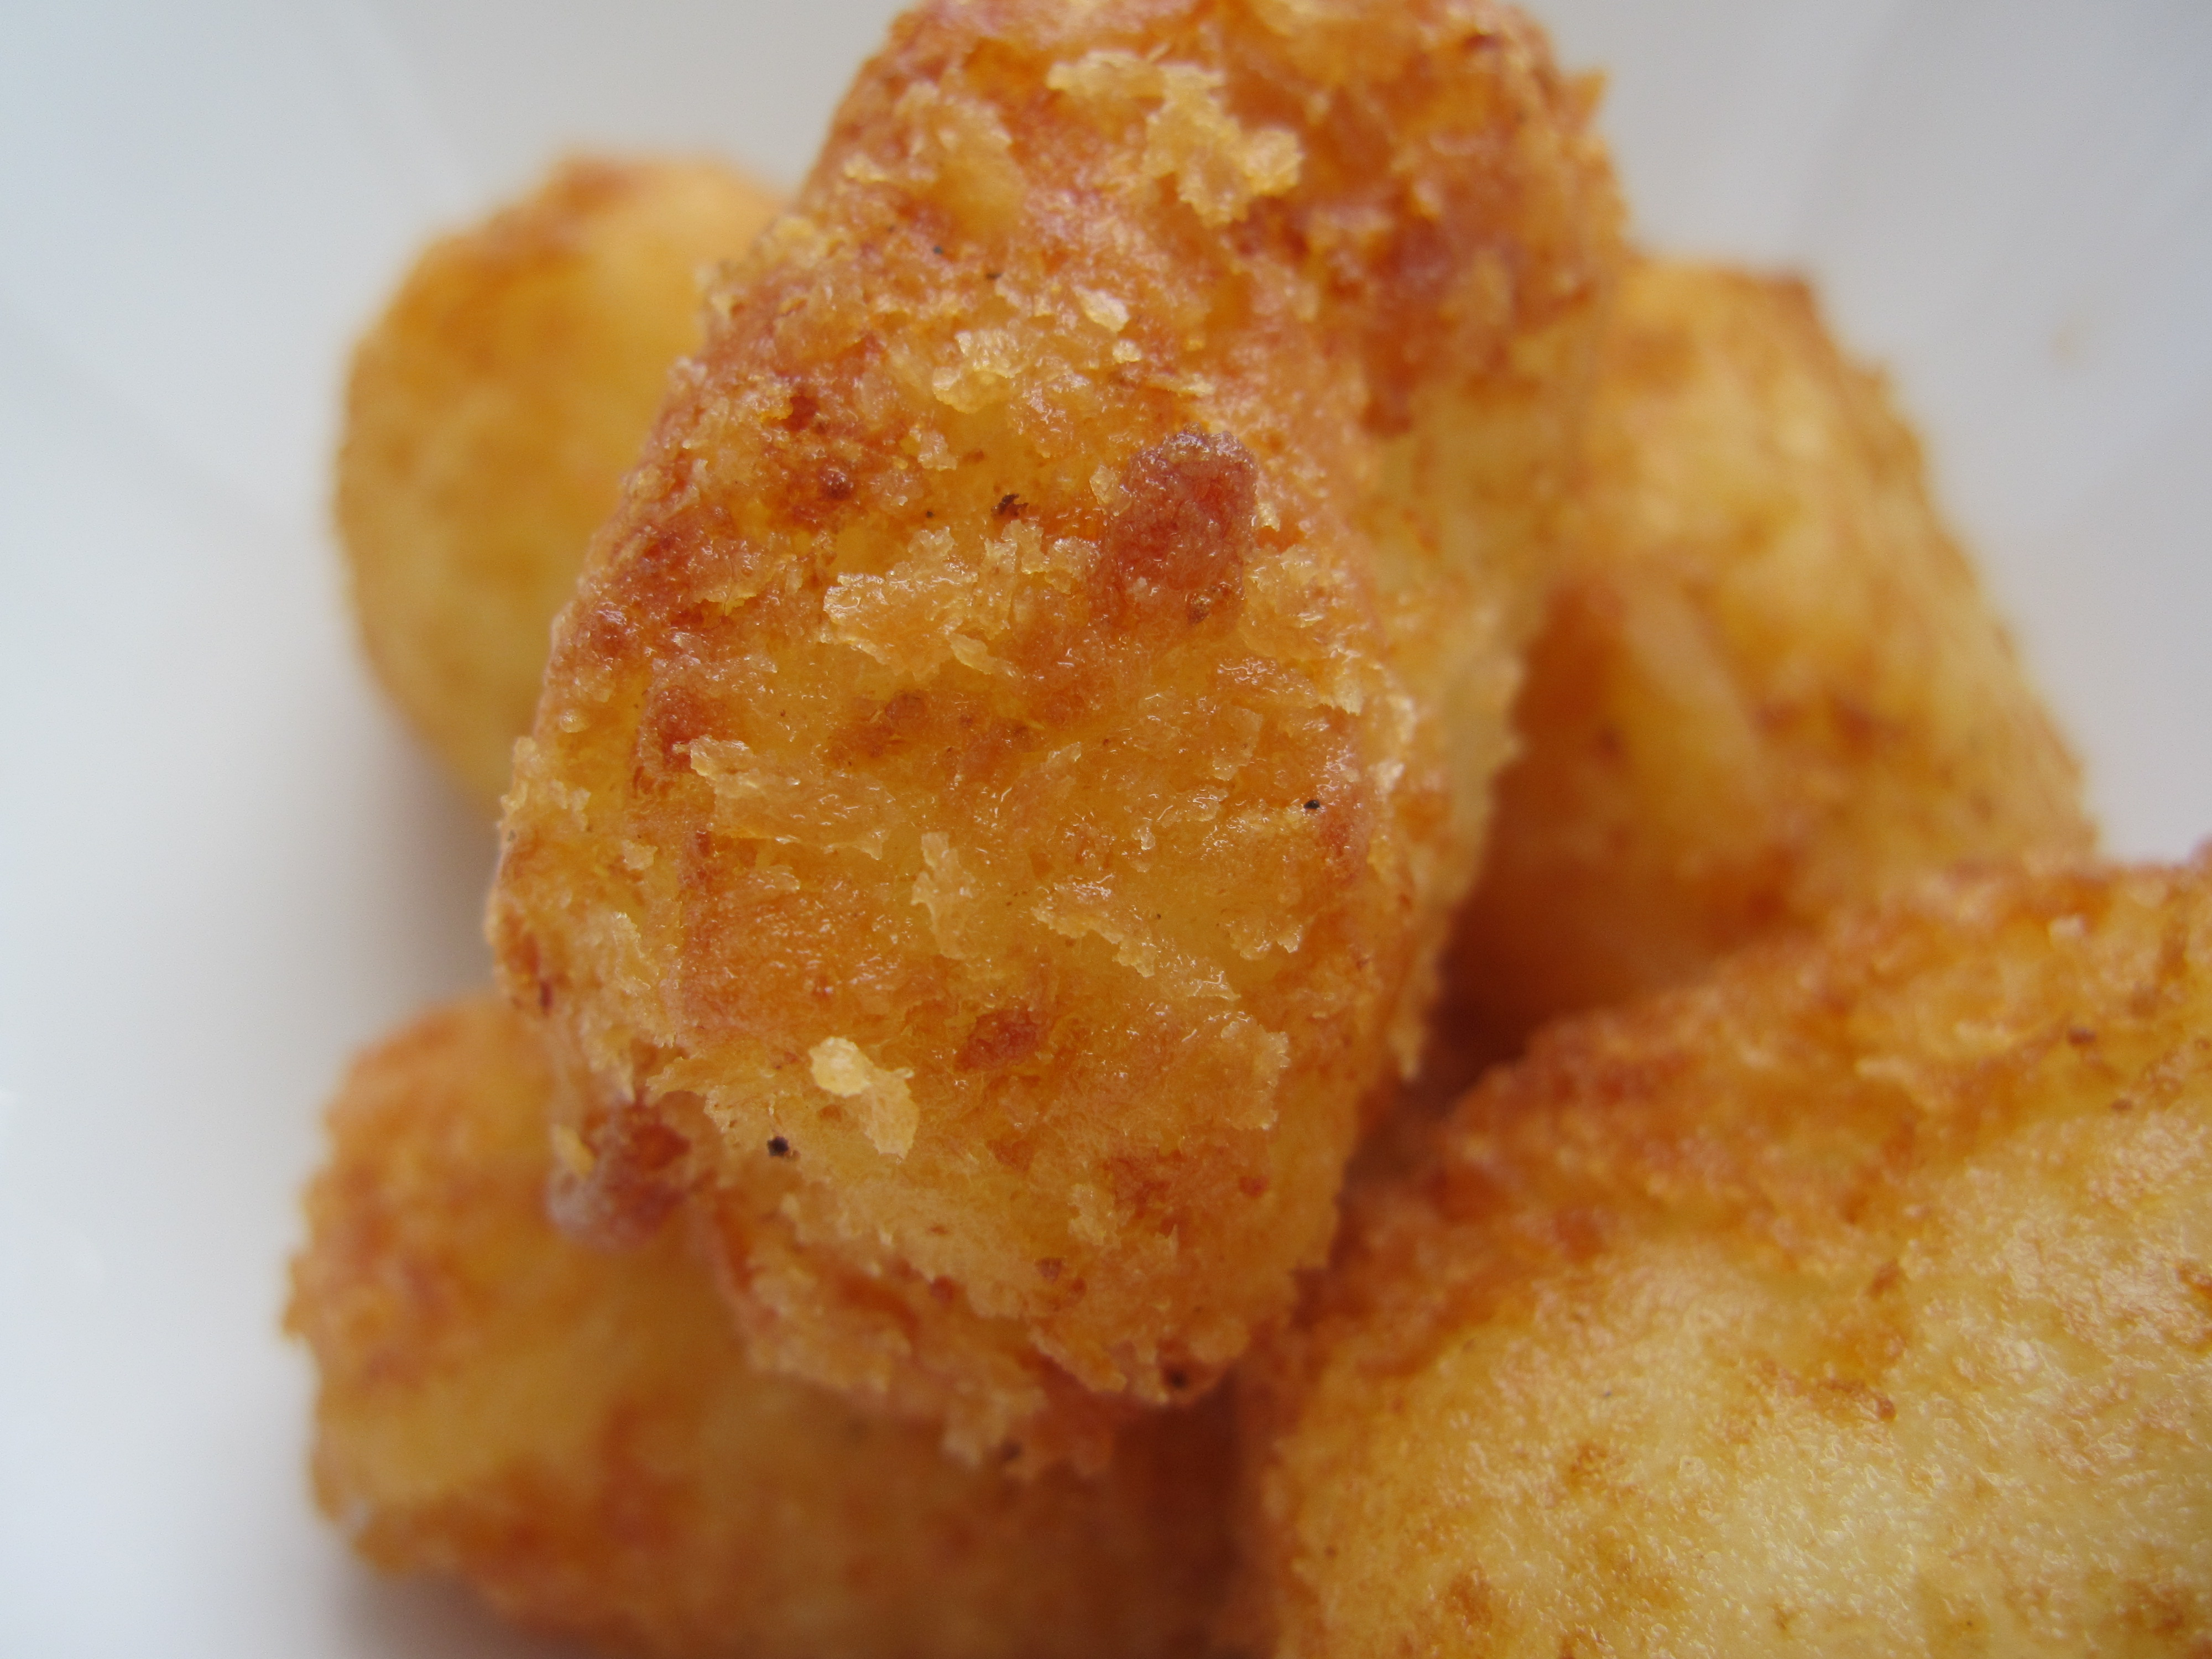 How to Preprare Homemade Tater Tots picture